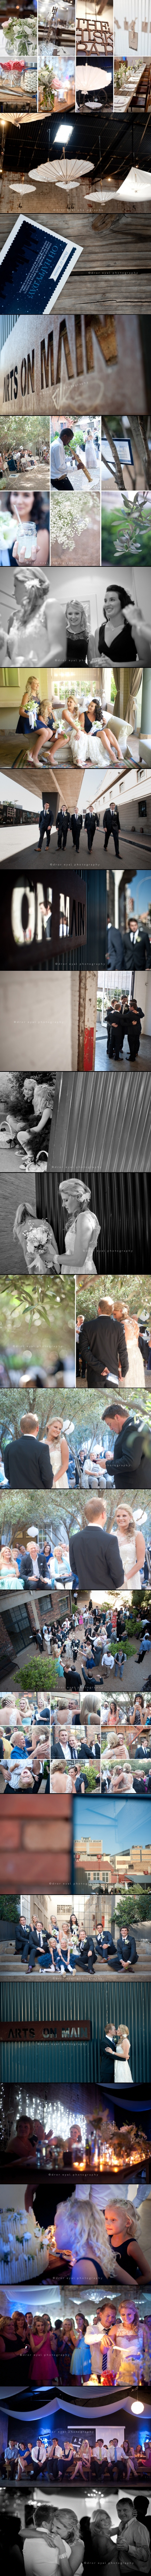 Arts on Main, Johannesburg Wedding - Dror Eyal Photography